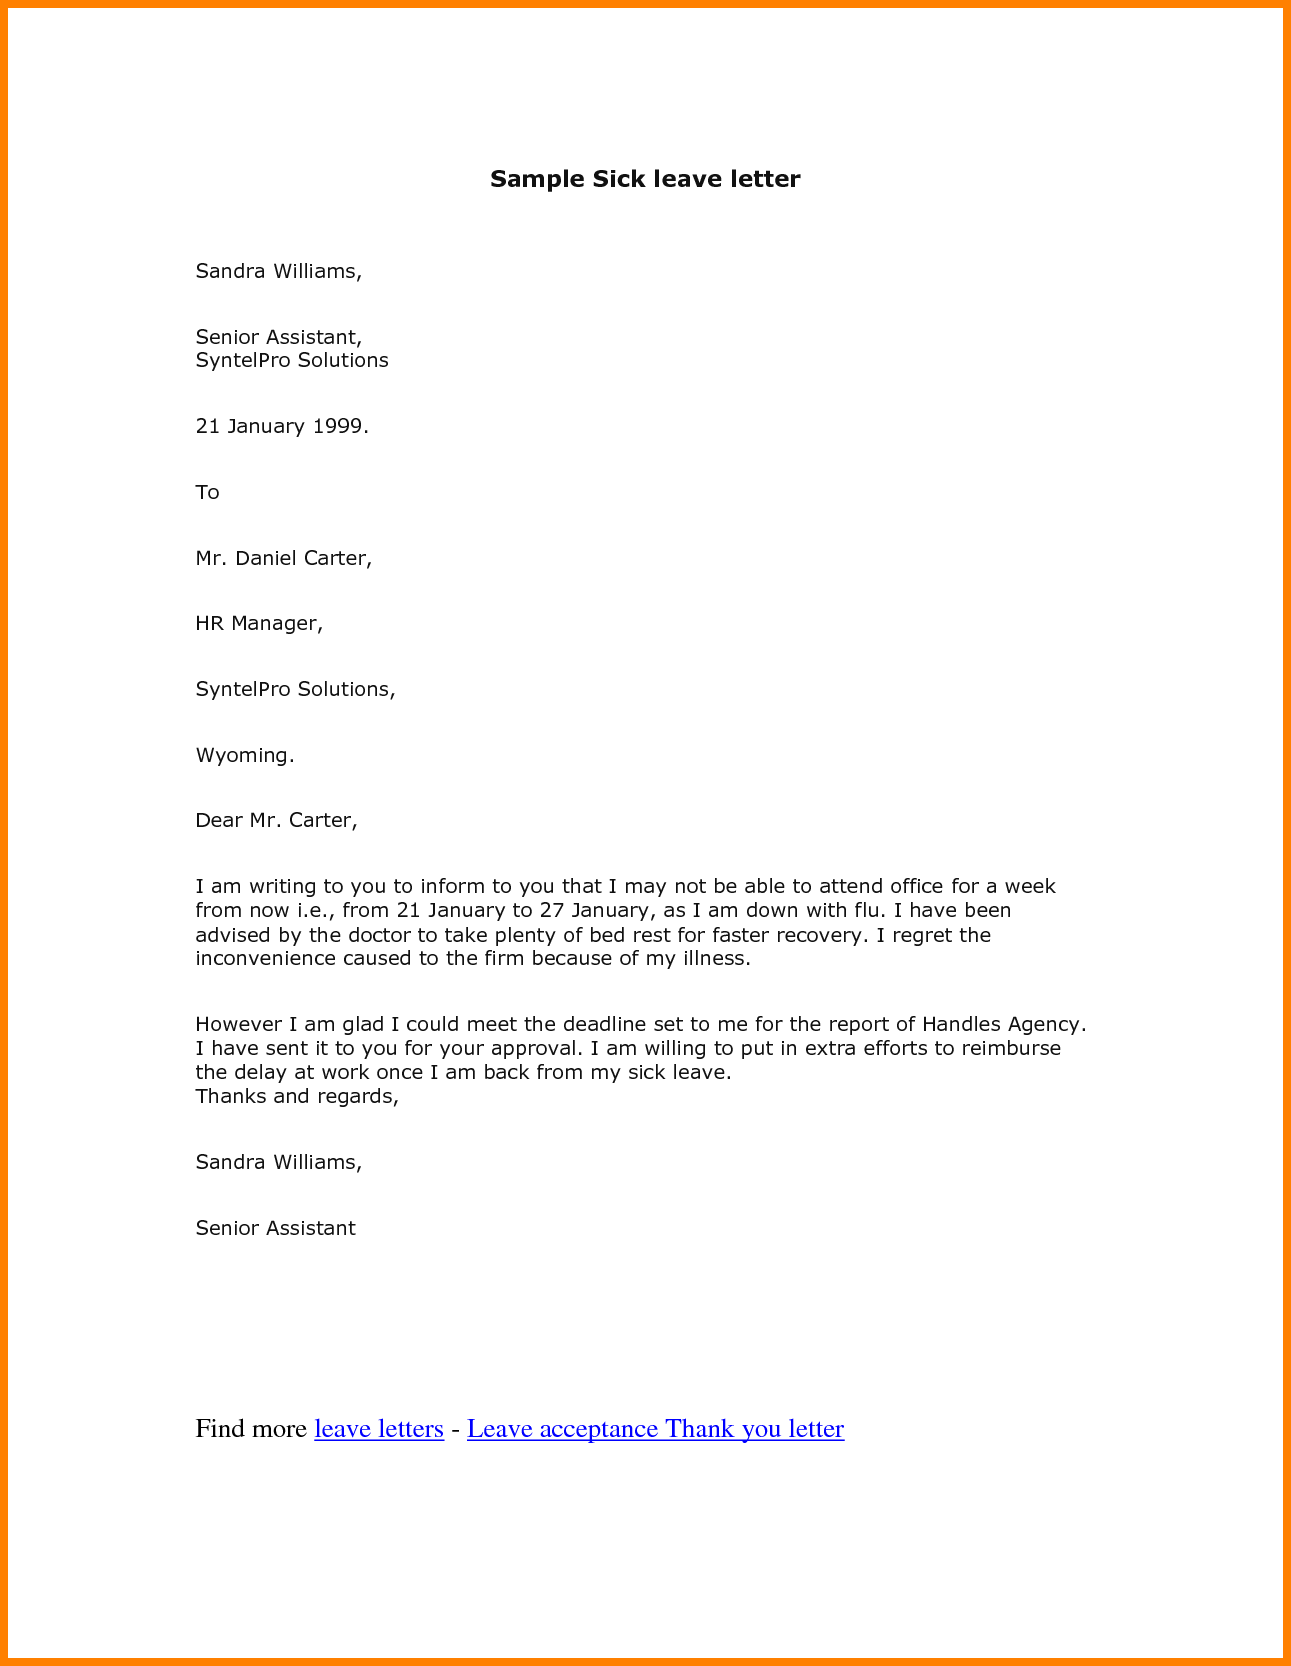 Writing Formal Cover Letters. PAge 2 A Guide TO WriTinG COver LeTTers And  OTher EmpLOymenT  Guide To Writing A Cover Letter